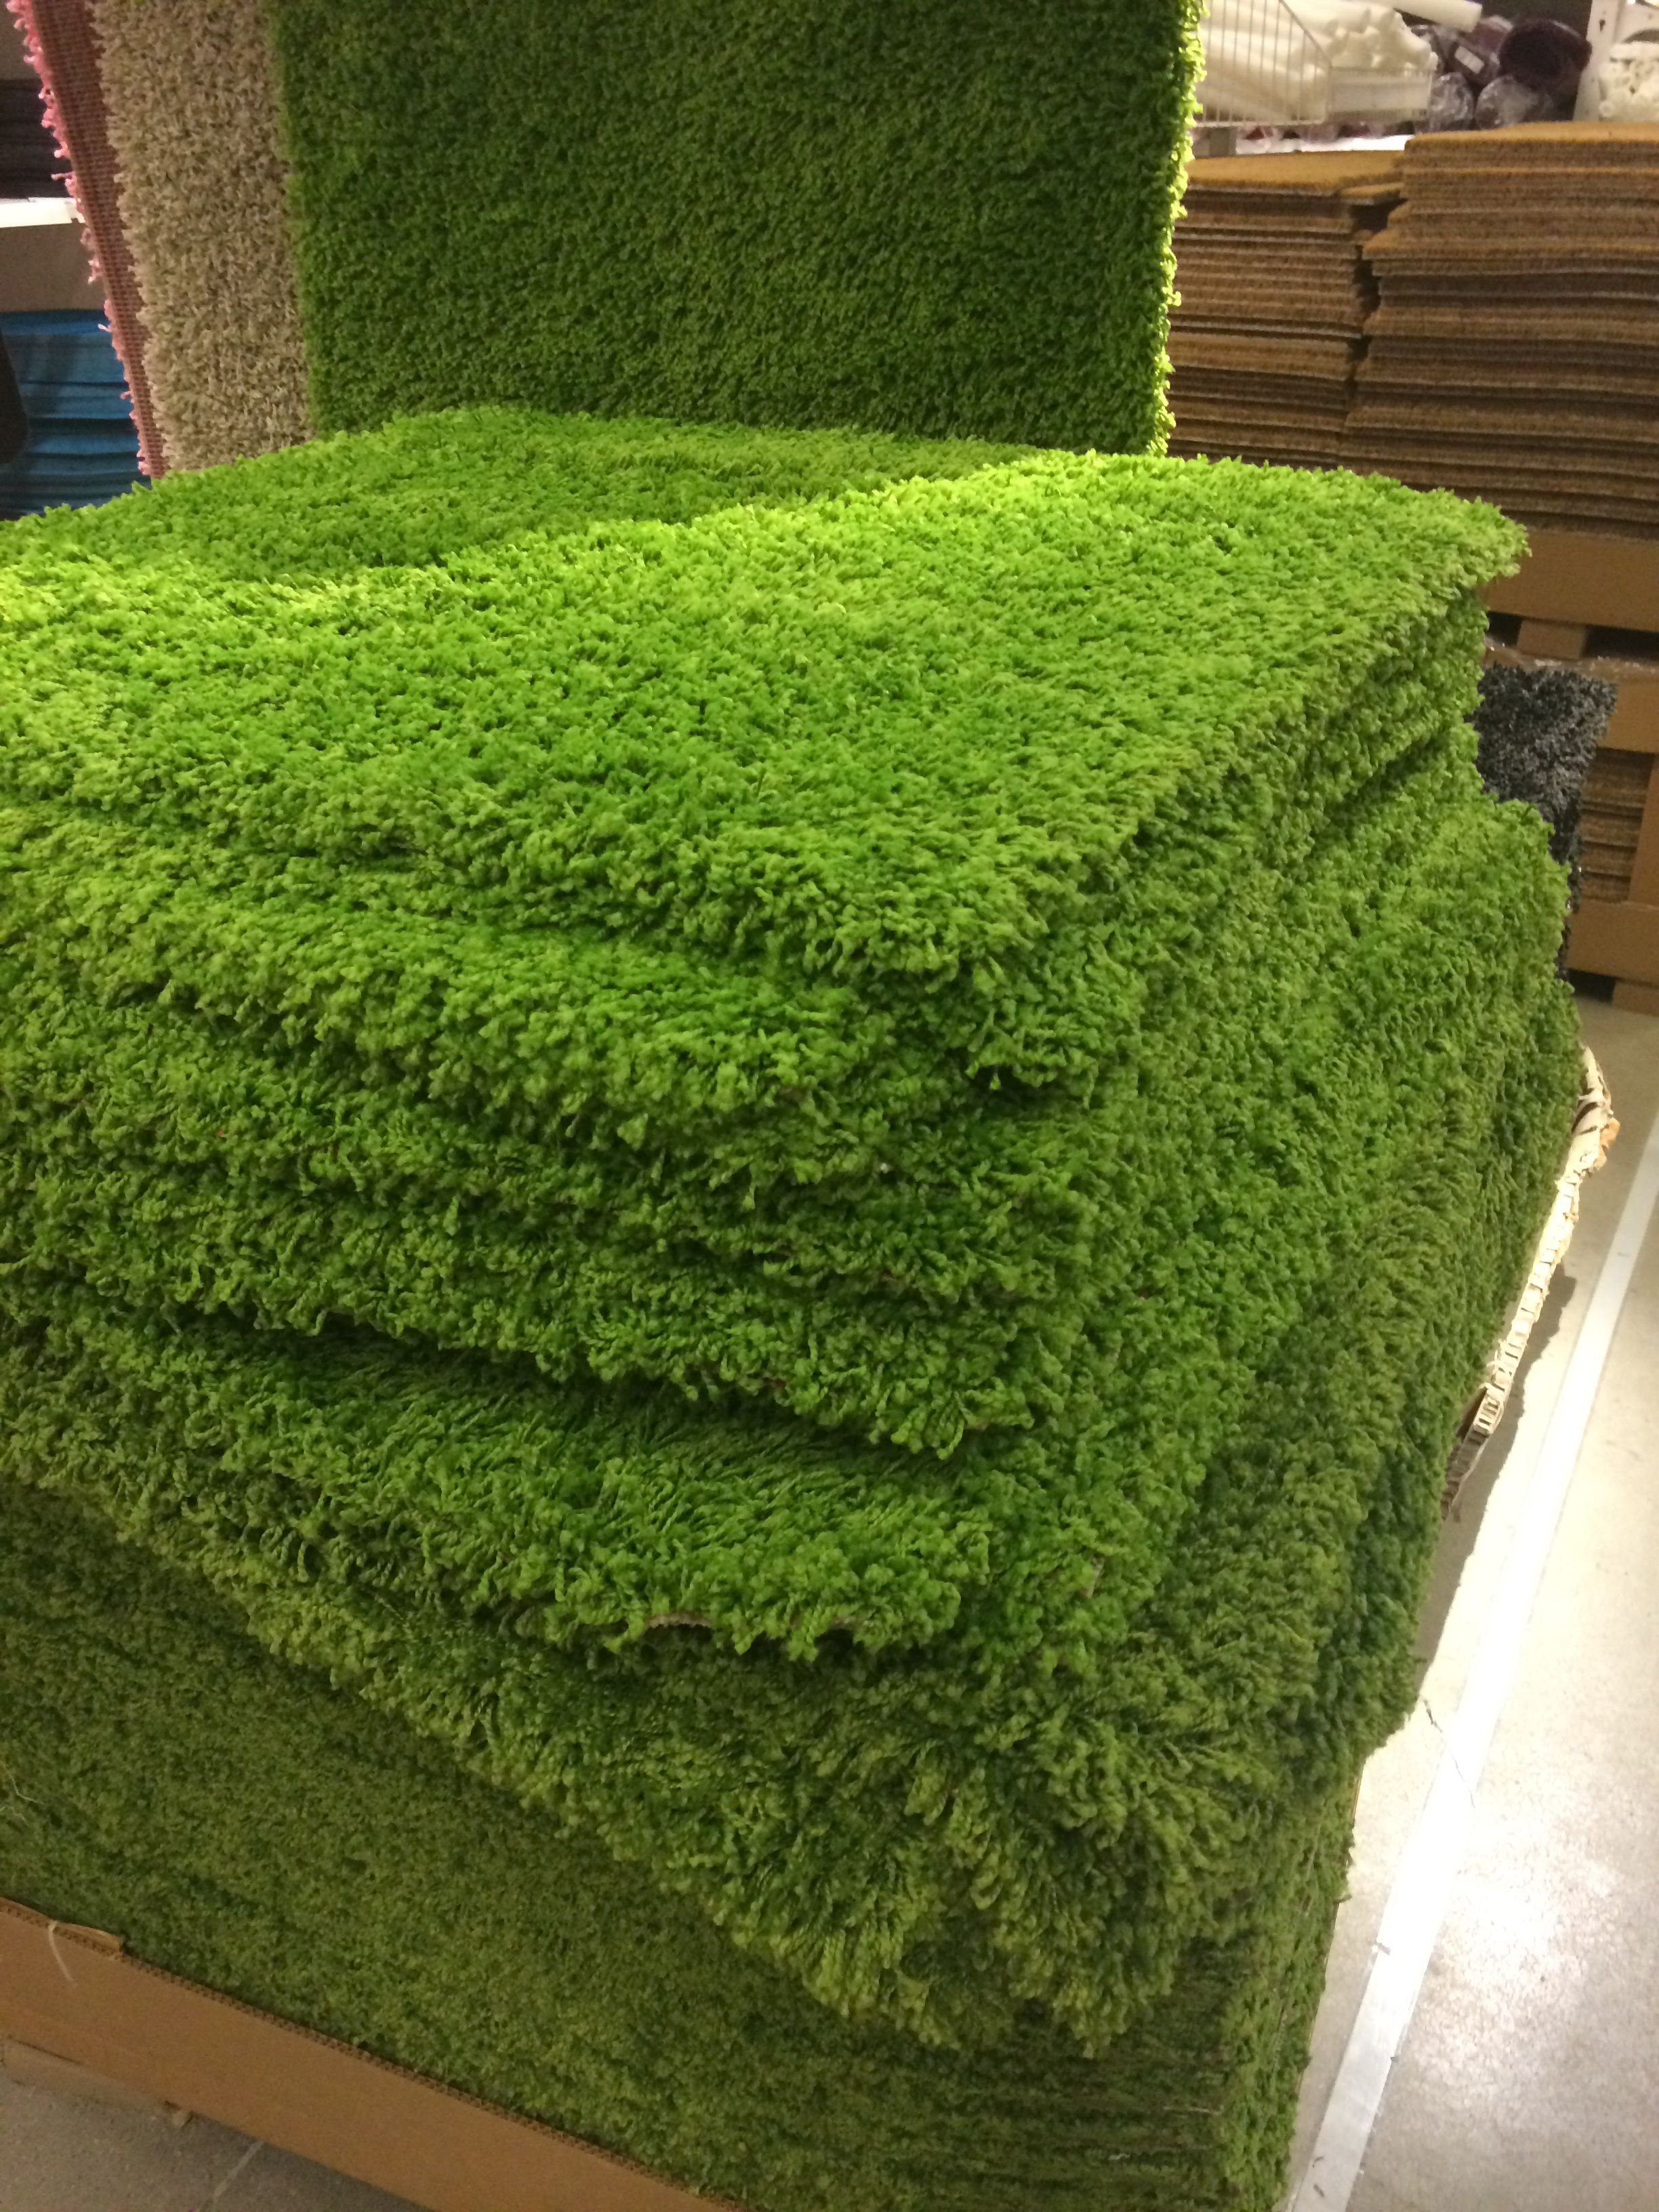 Gr Carpet Squares From Ikea Perfect For A Reggio Inspired Environment